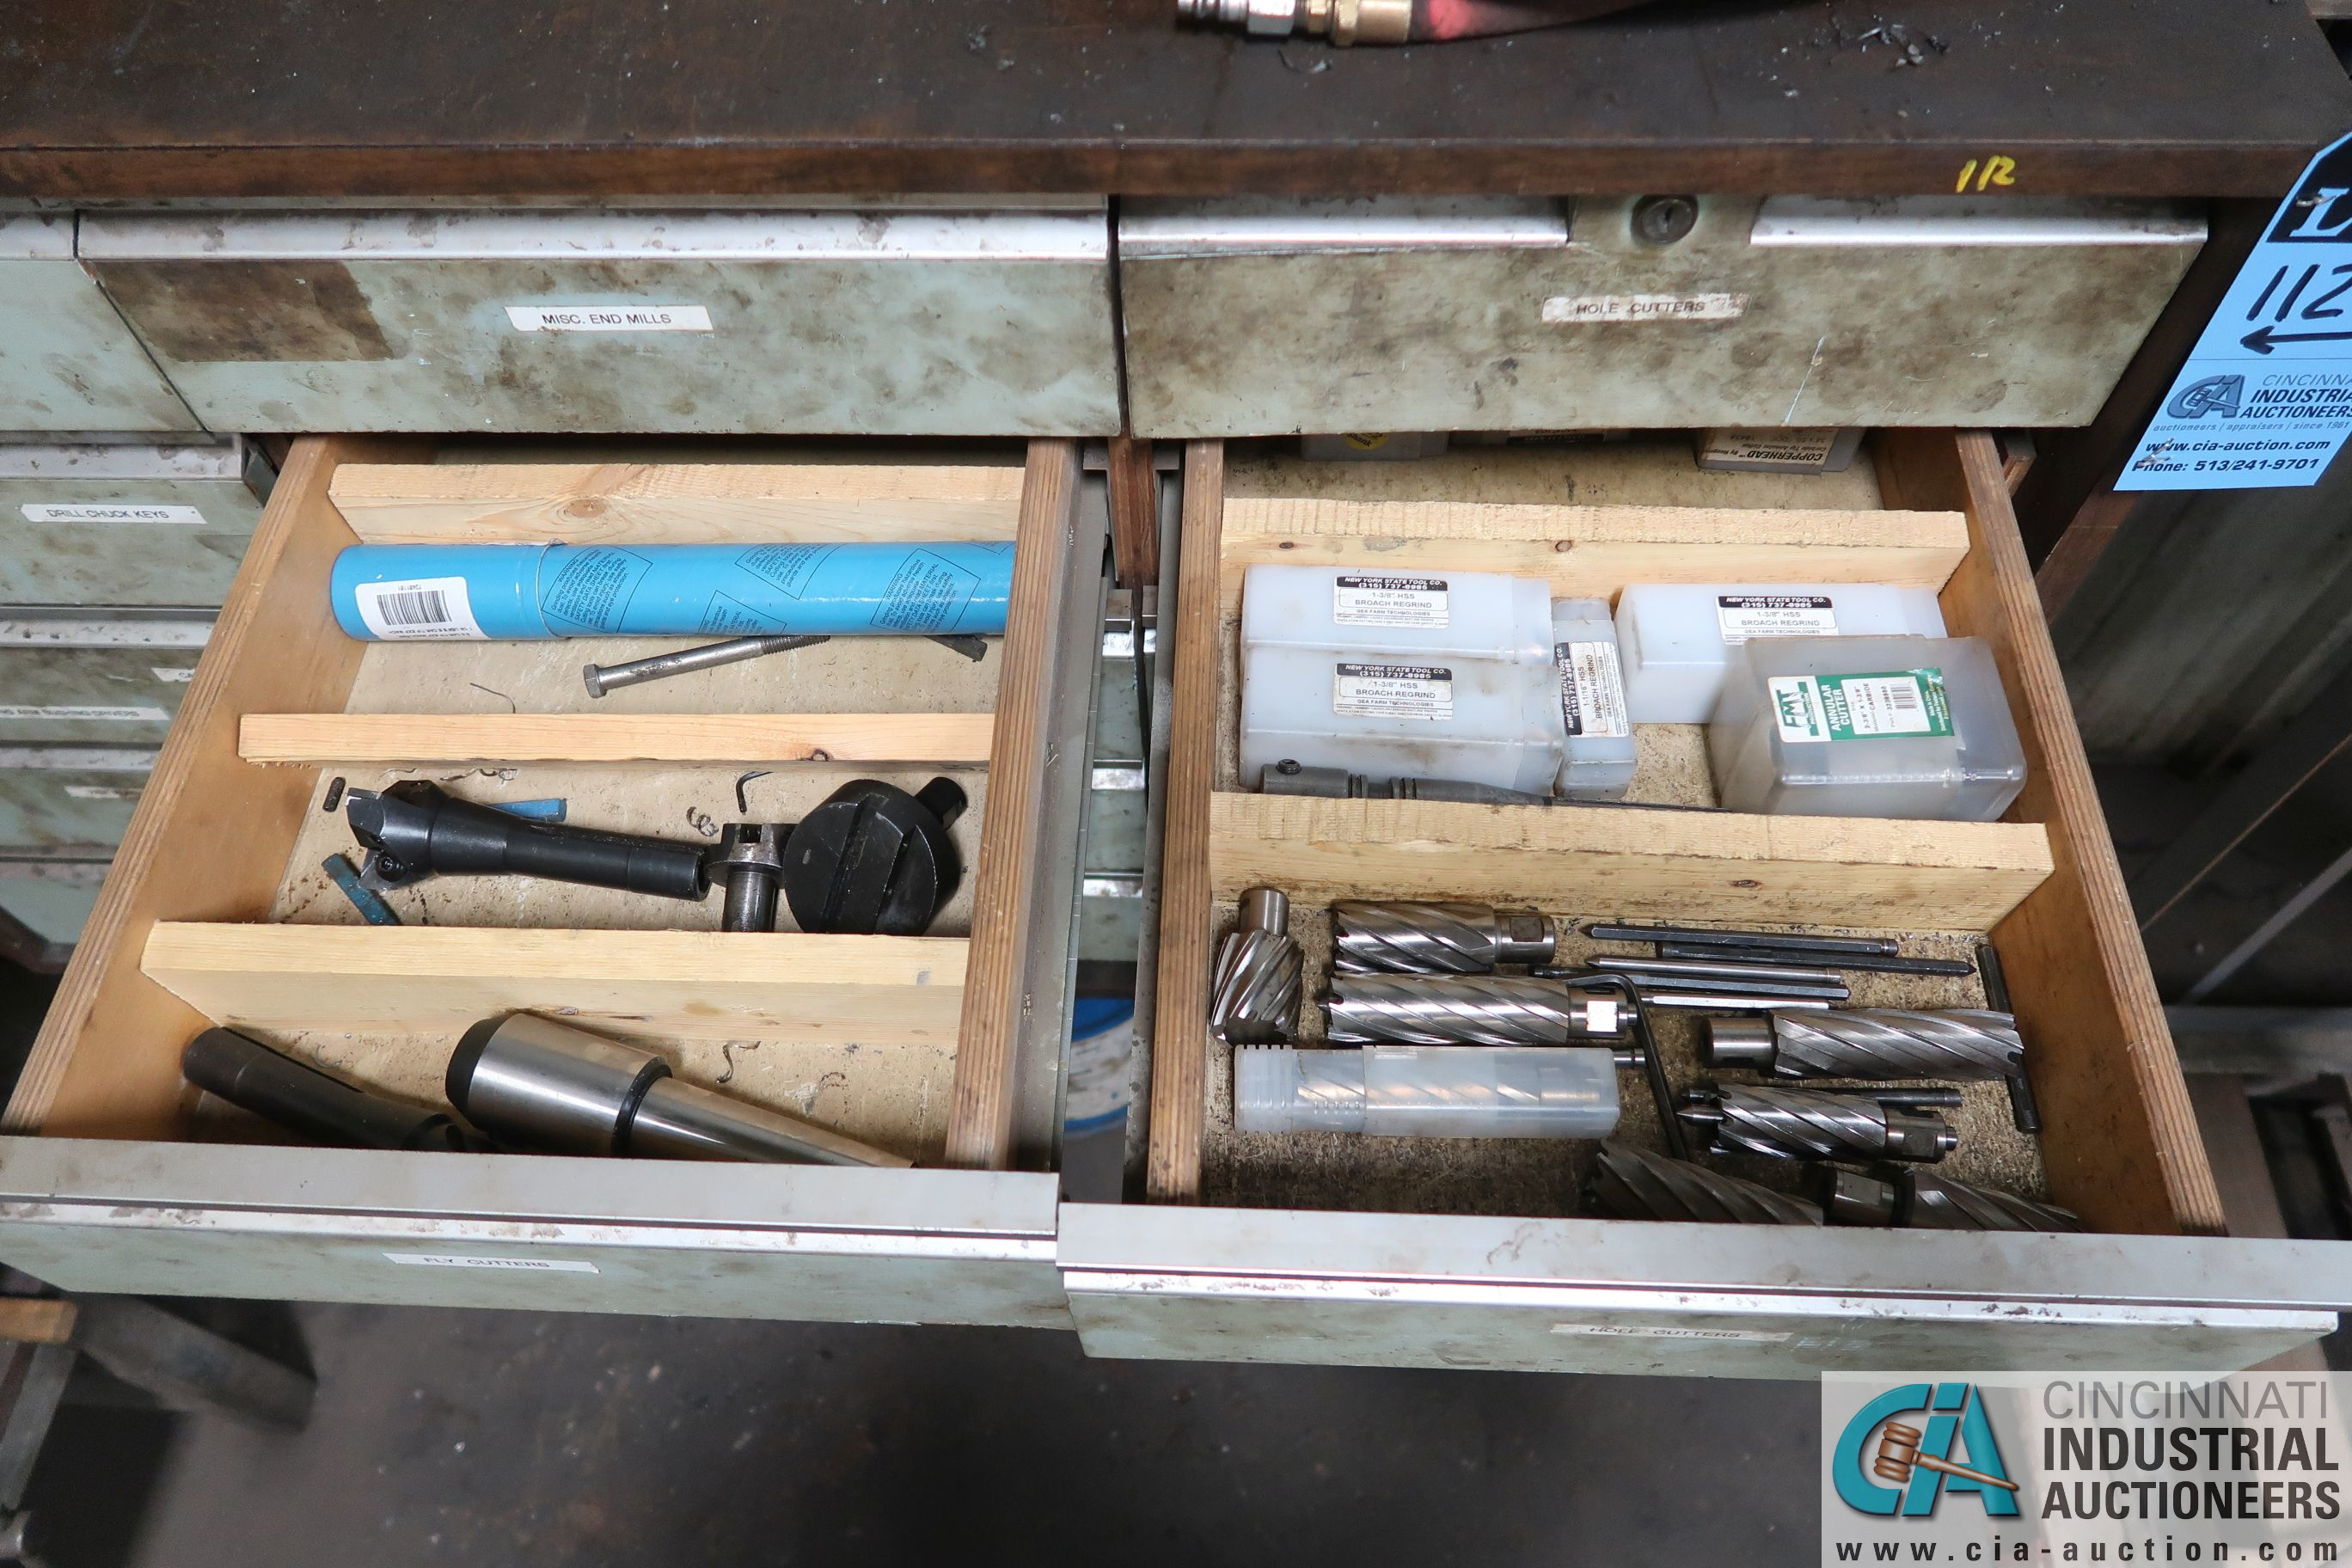 CABINETS WITH MISC. TOOLING, PARTS, HOLD DOWNS - Image 12 of 15